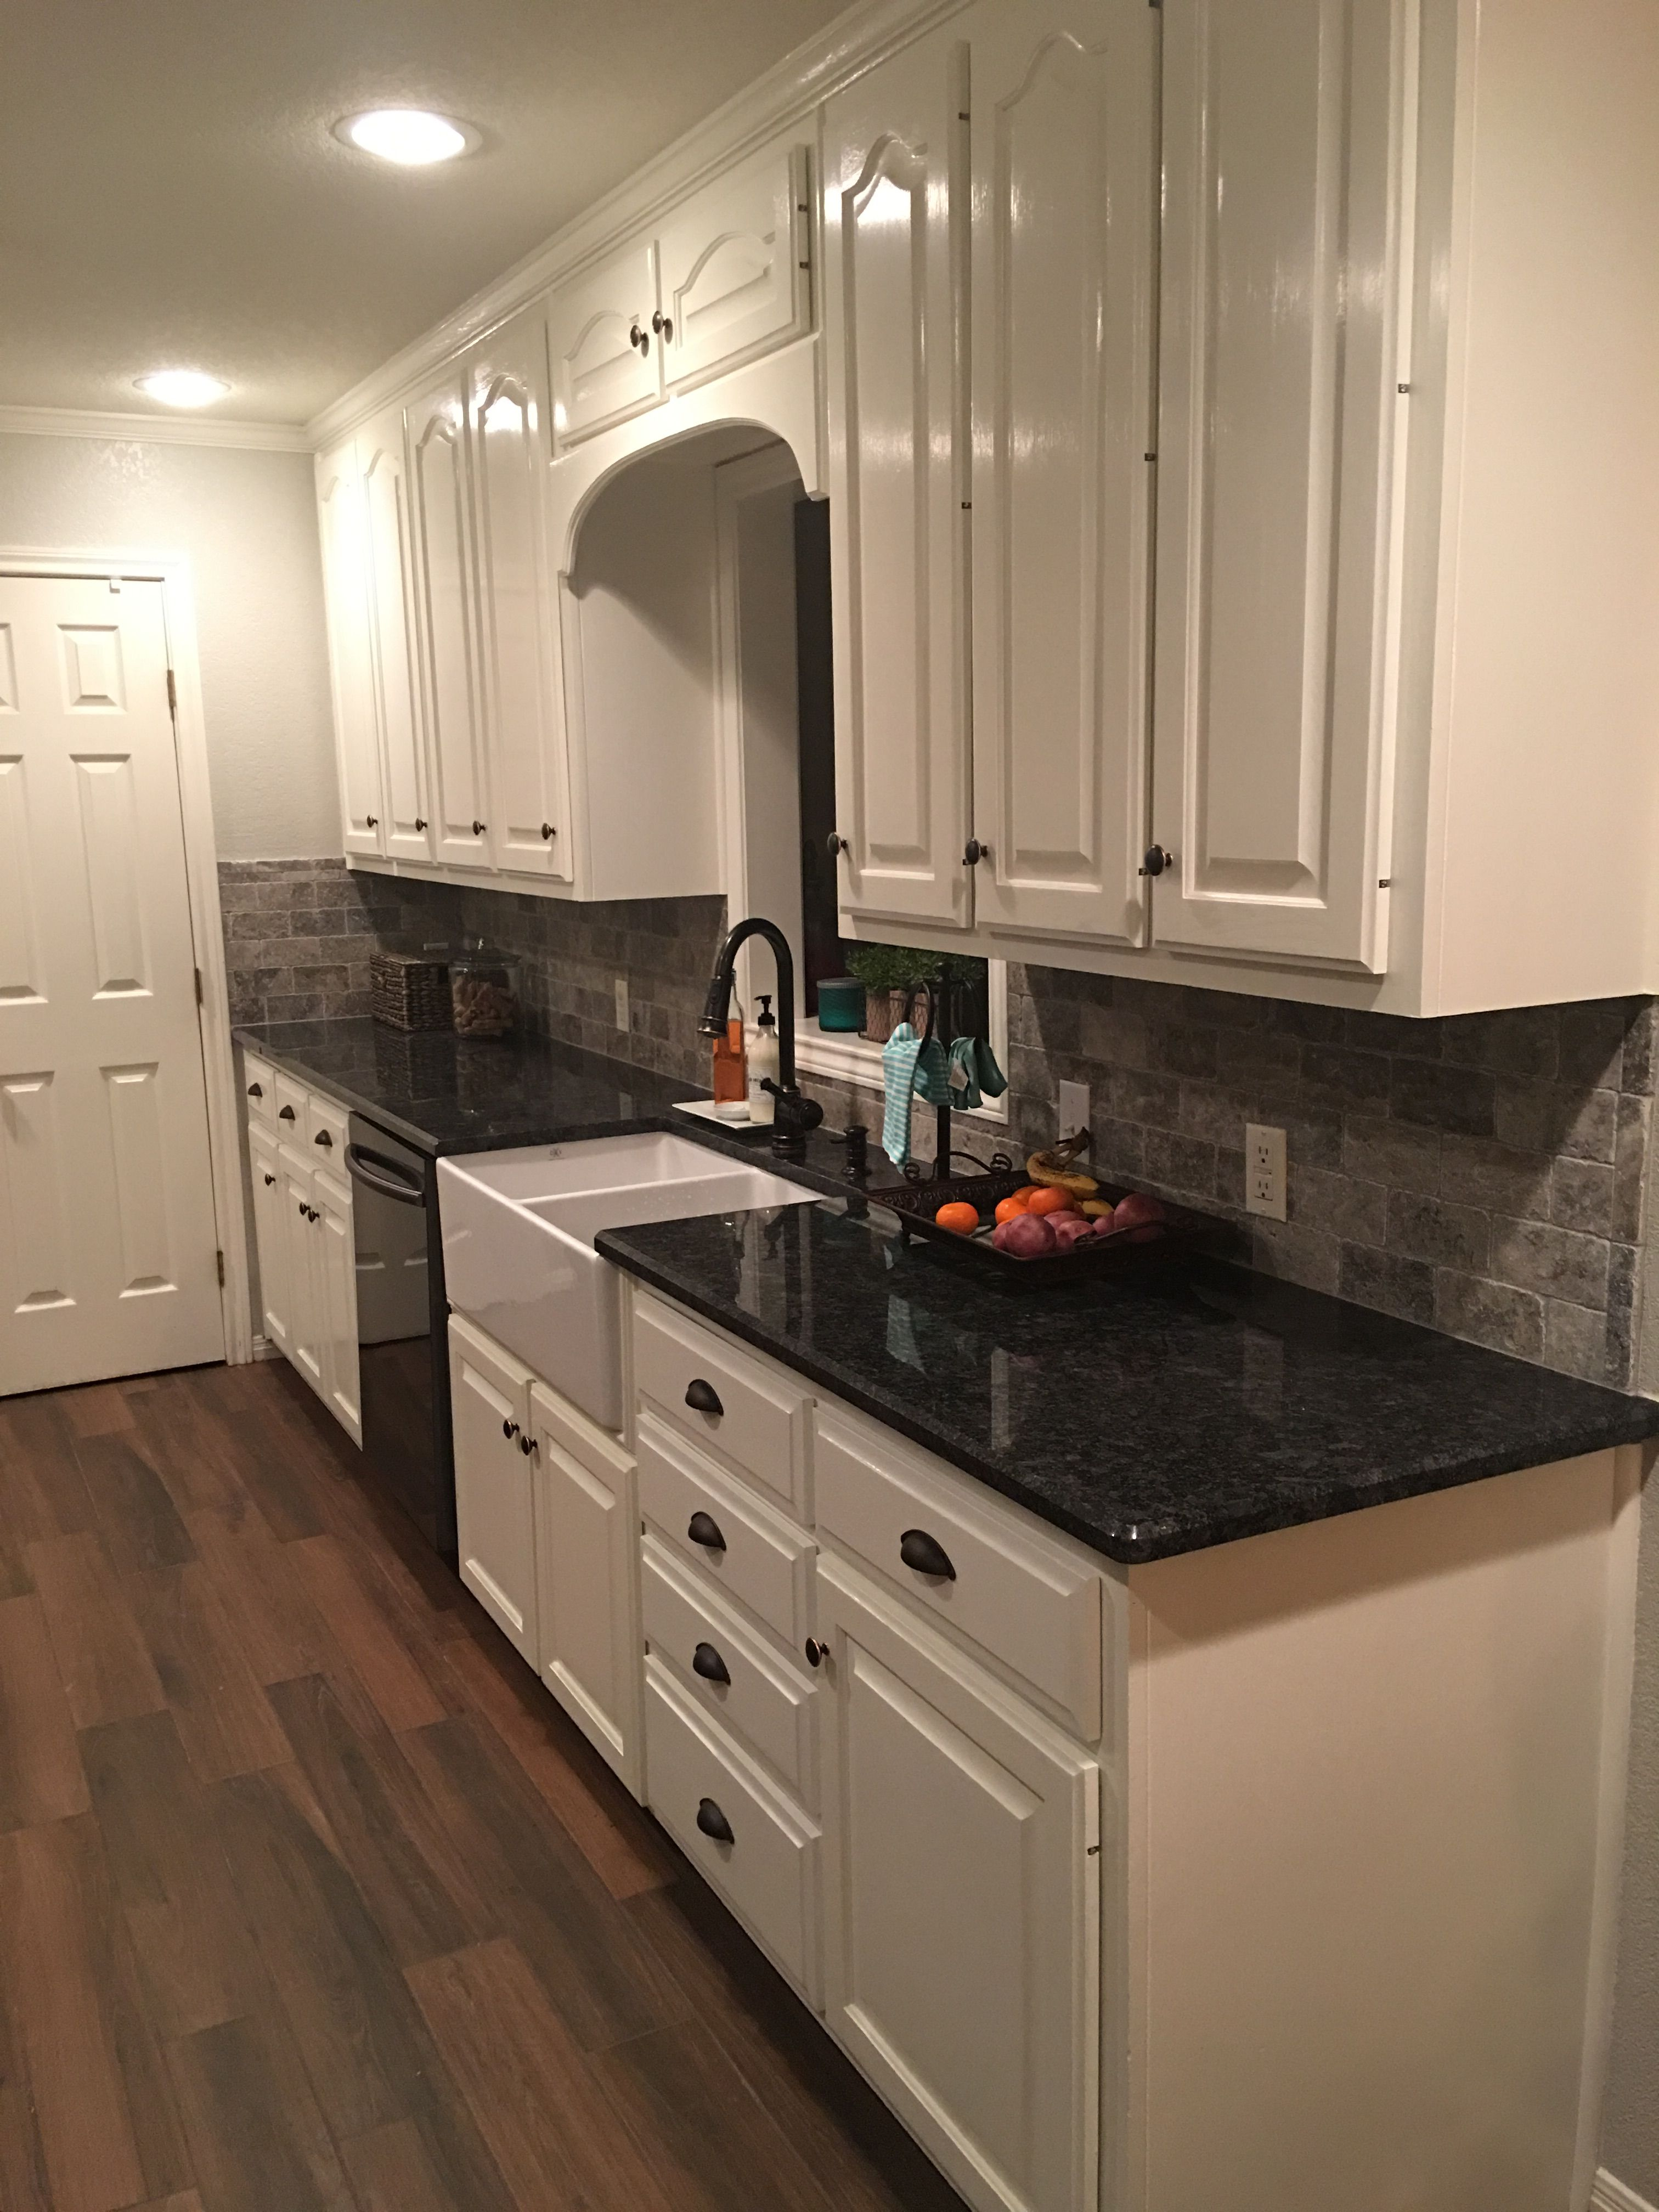 Black Stainless Steel Appliances Steel Gray Counter Tops Benjamin Moore Simply Backsplash For White Cabinets Black Appliances Kitchen Kitchen Cabinet Remodel